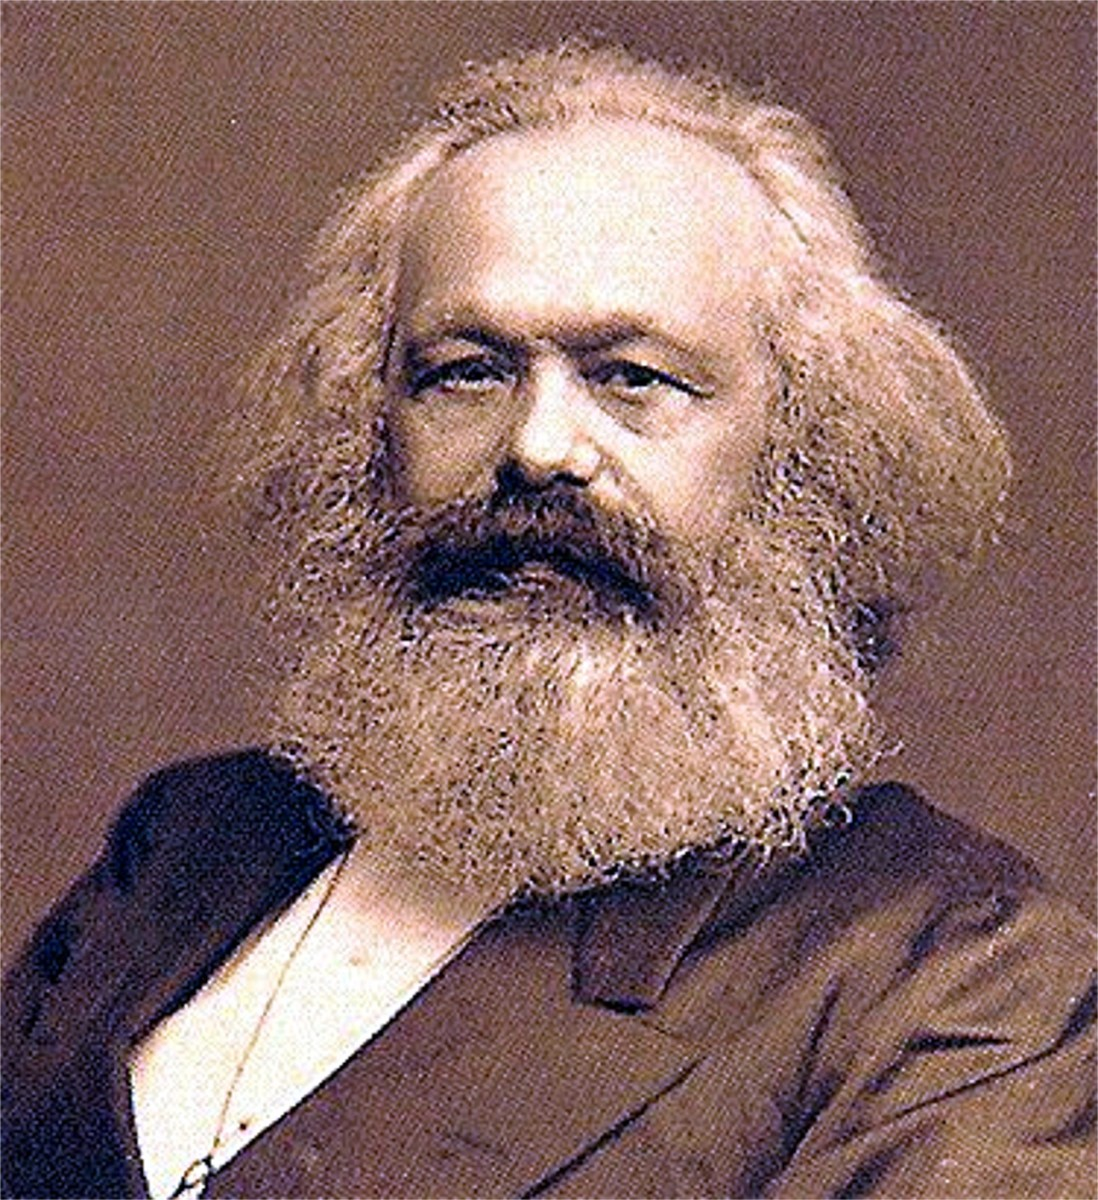 What would Mr. Marx think of this book?